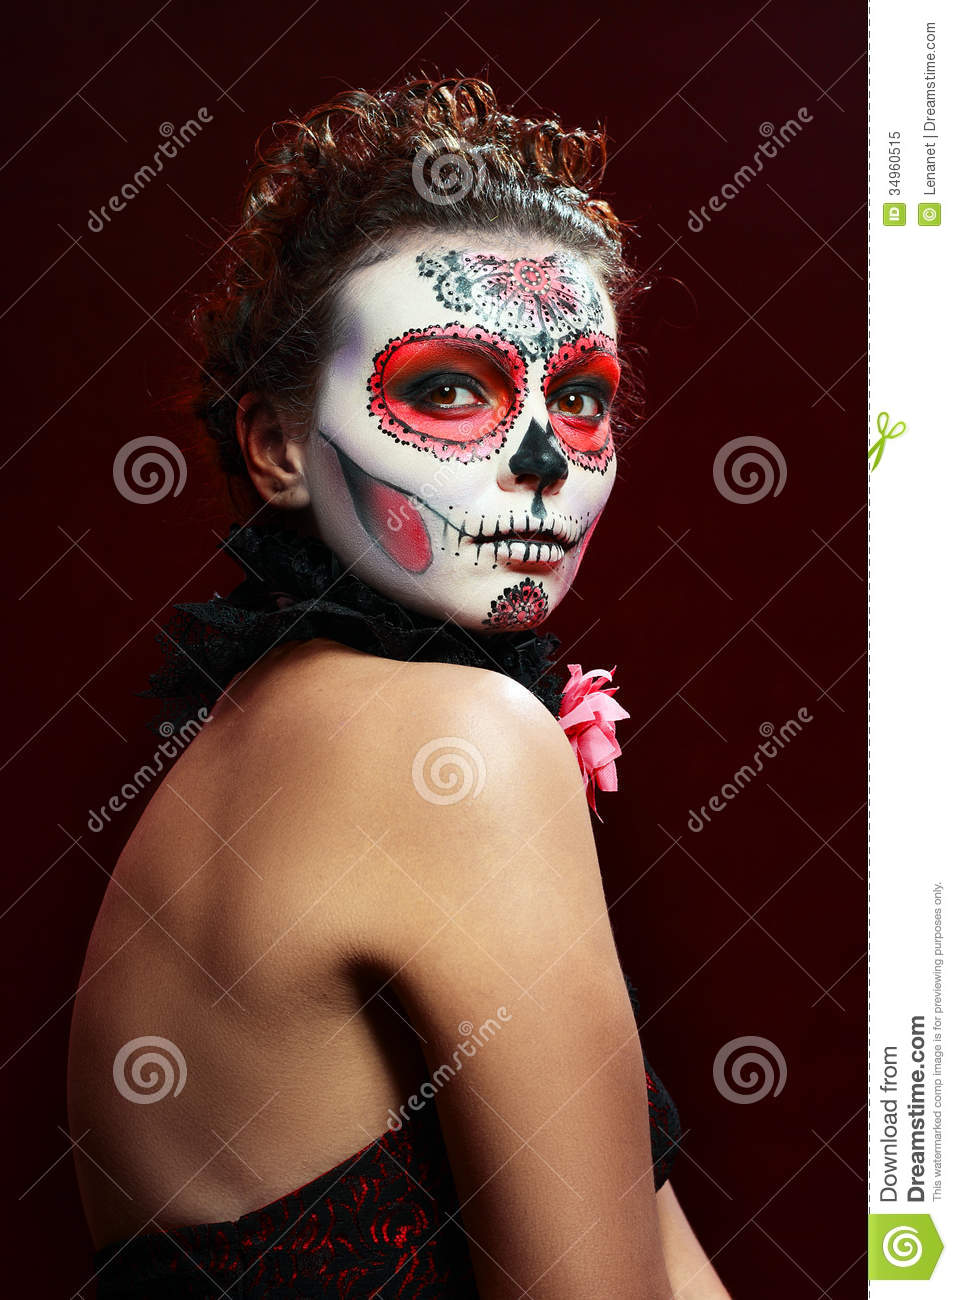 Awesome Free Halloween Makeup Images - harrop.us - harrop.us